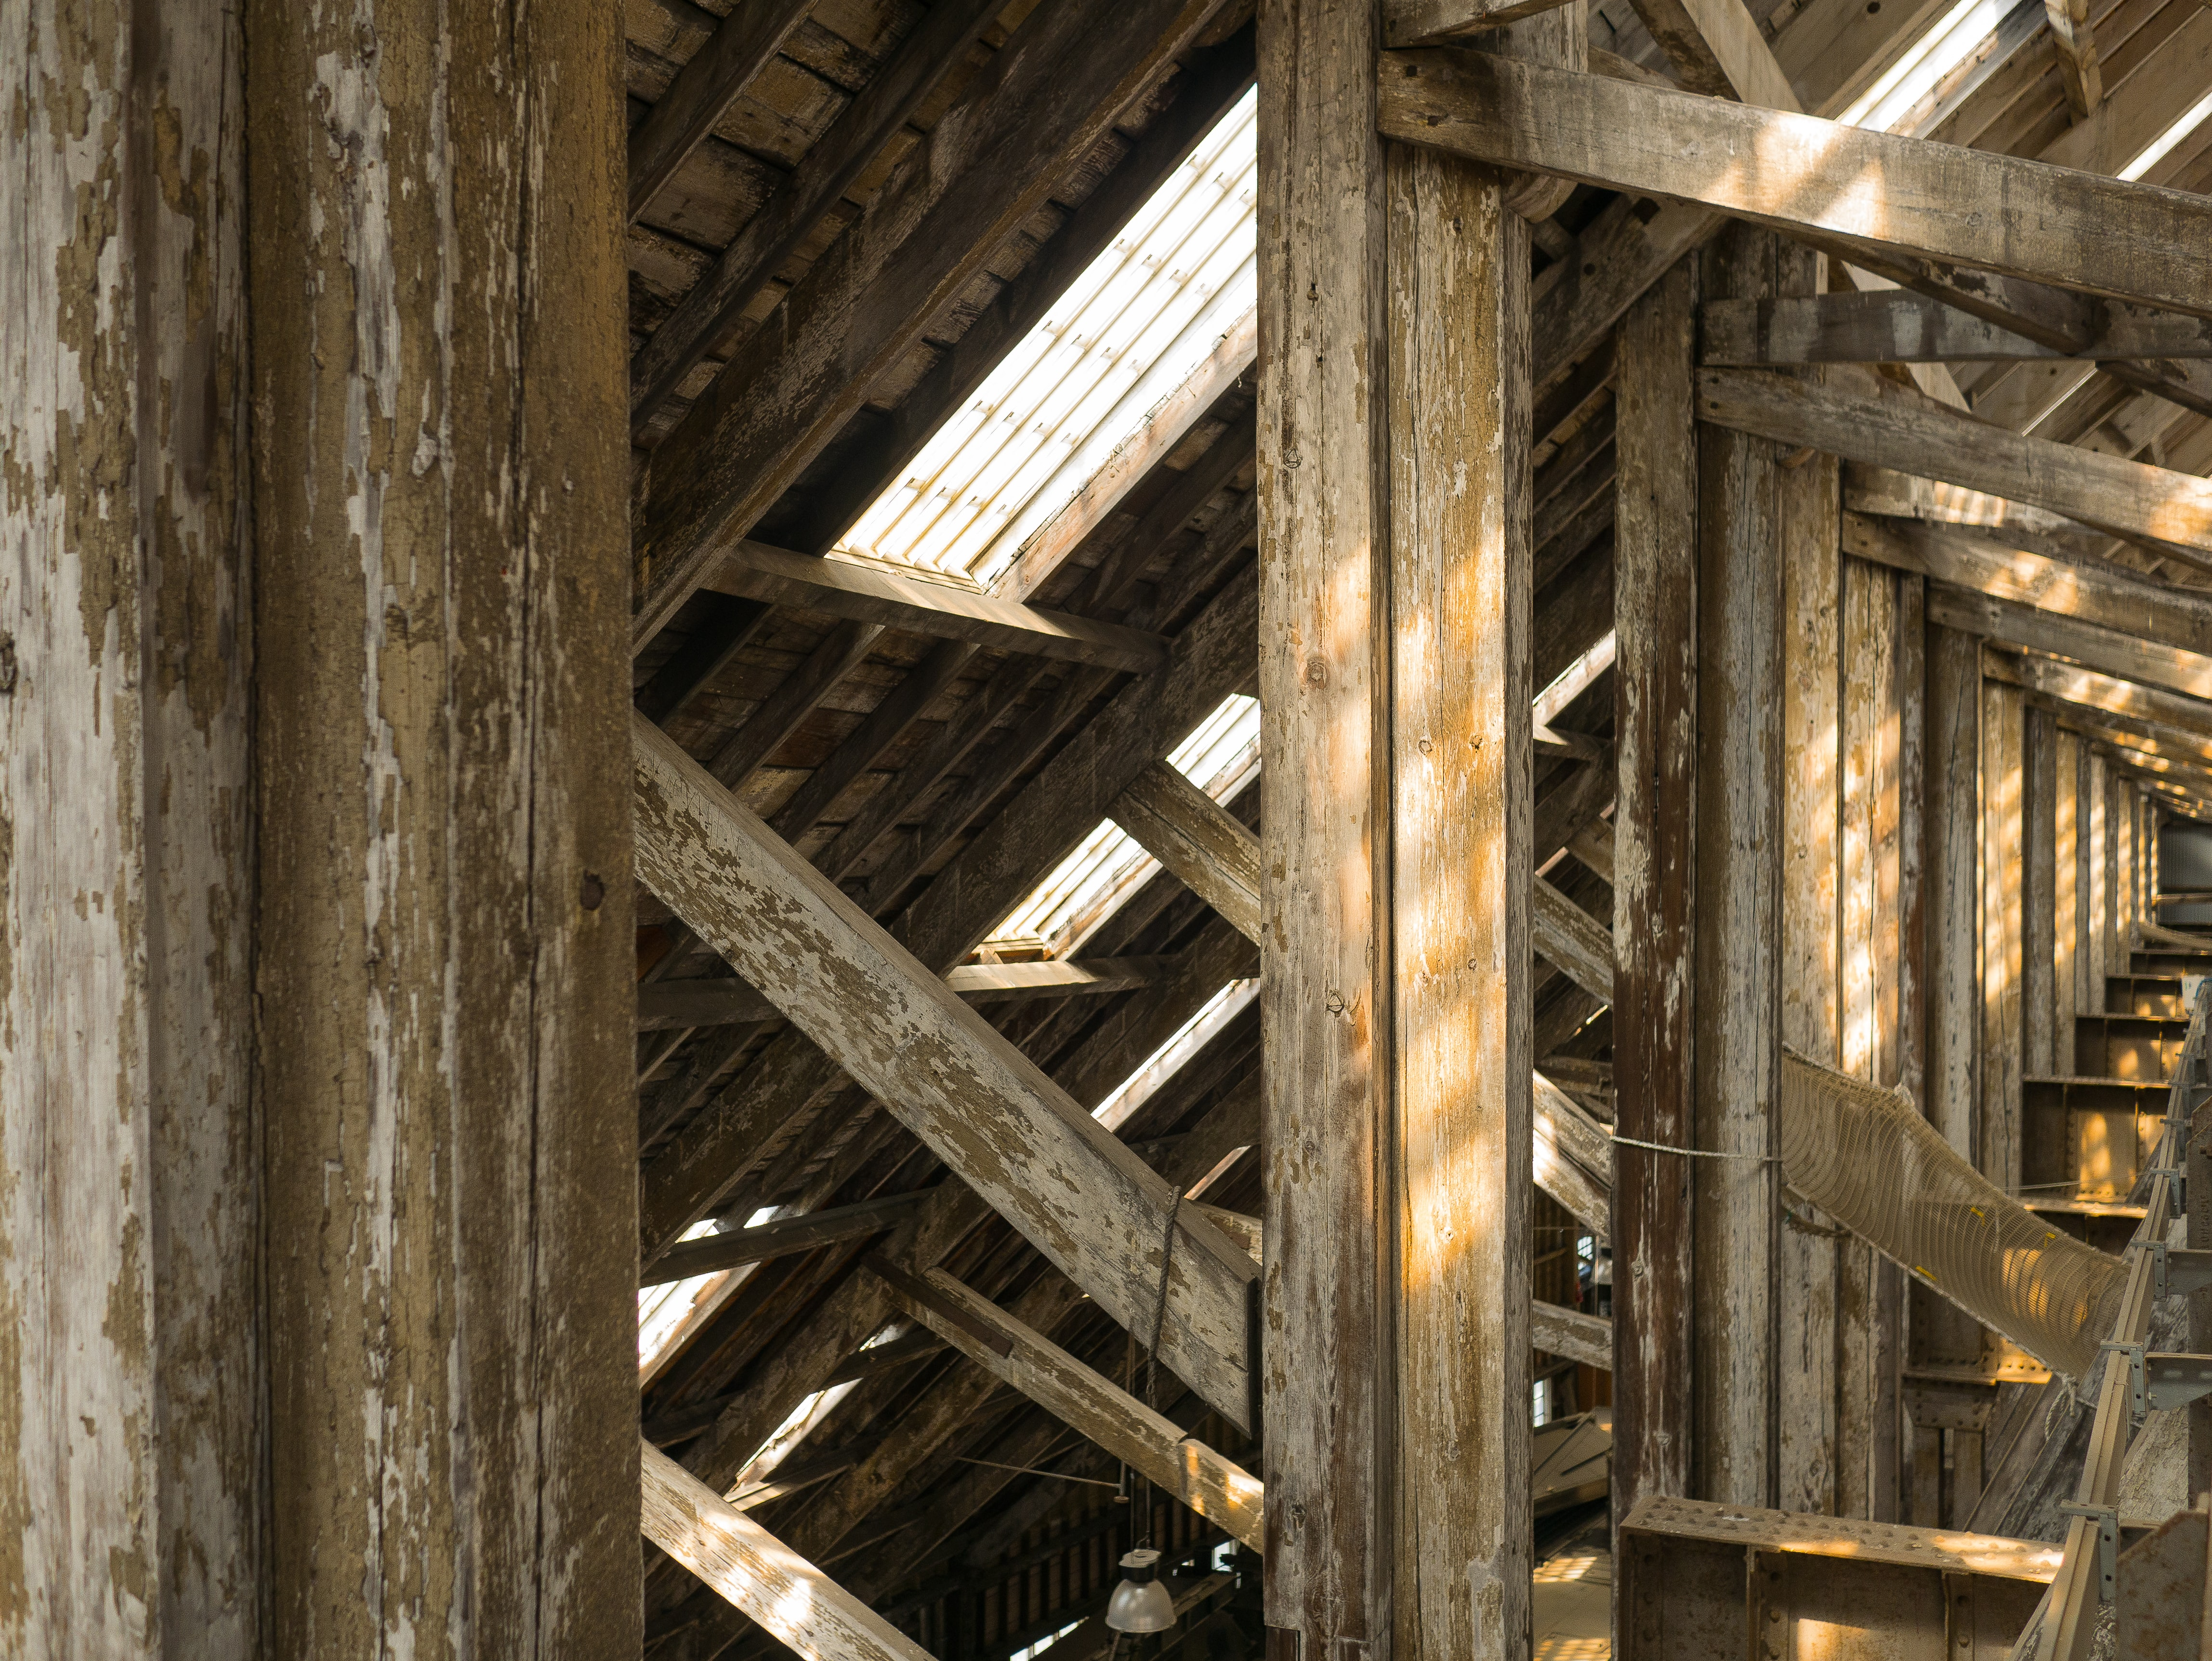 A number of beams under the ceiling of an old wooden building